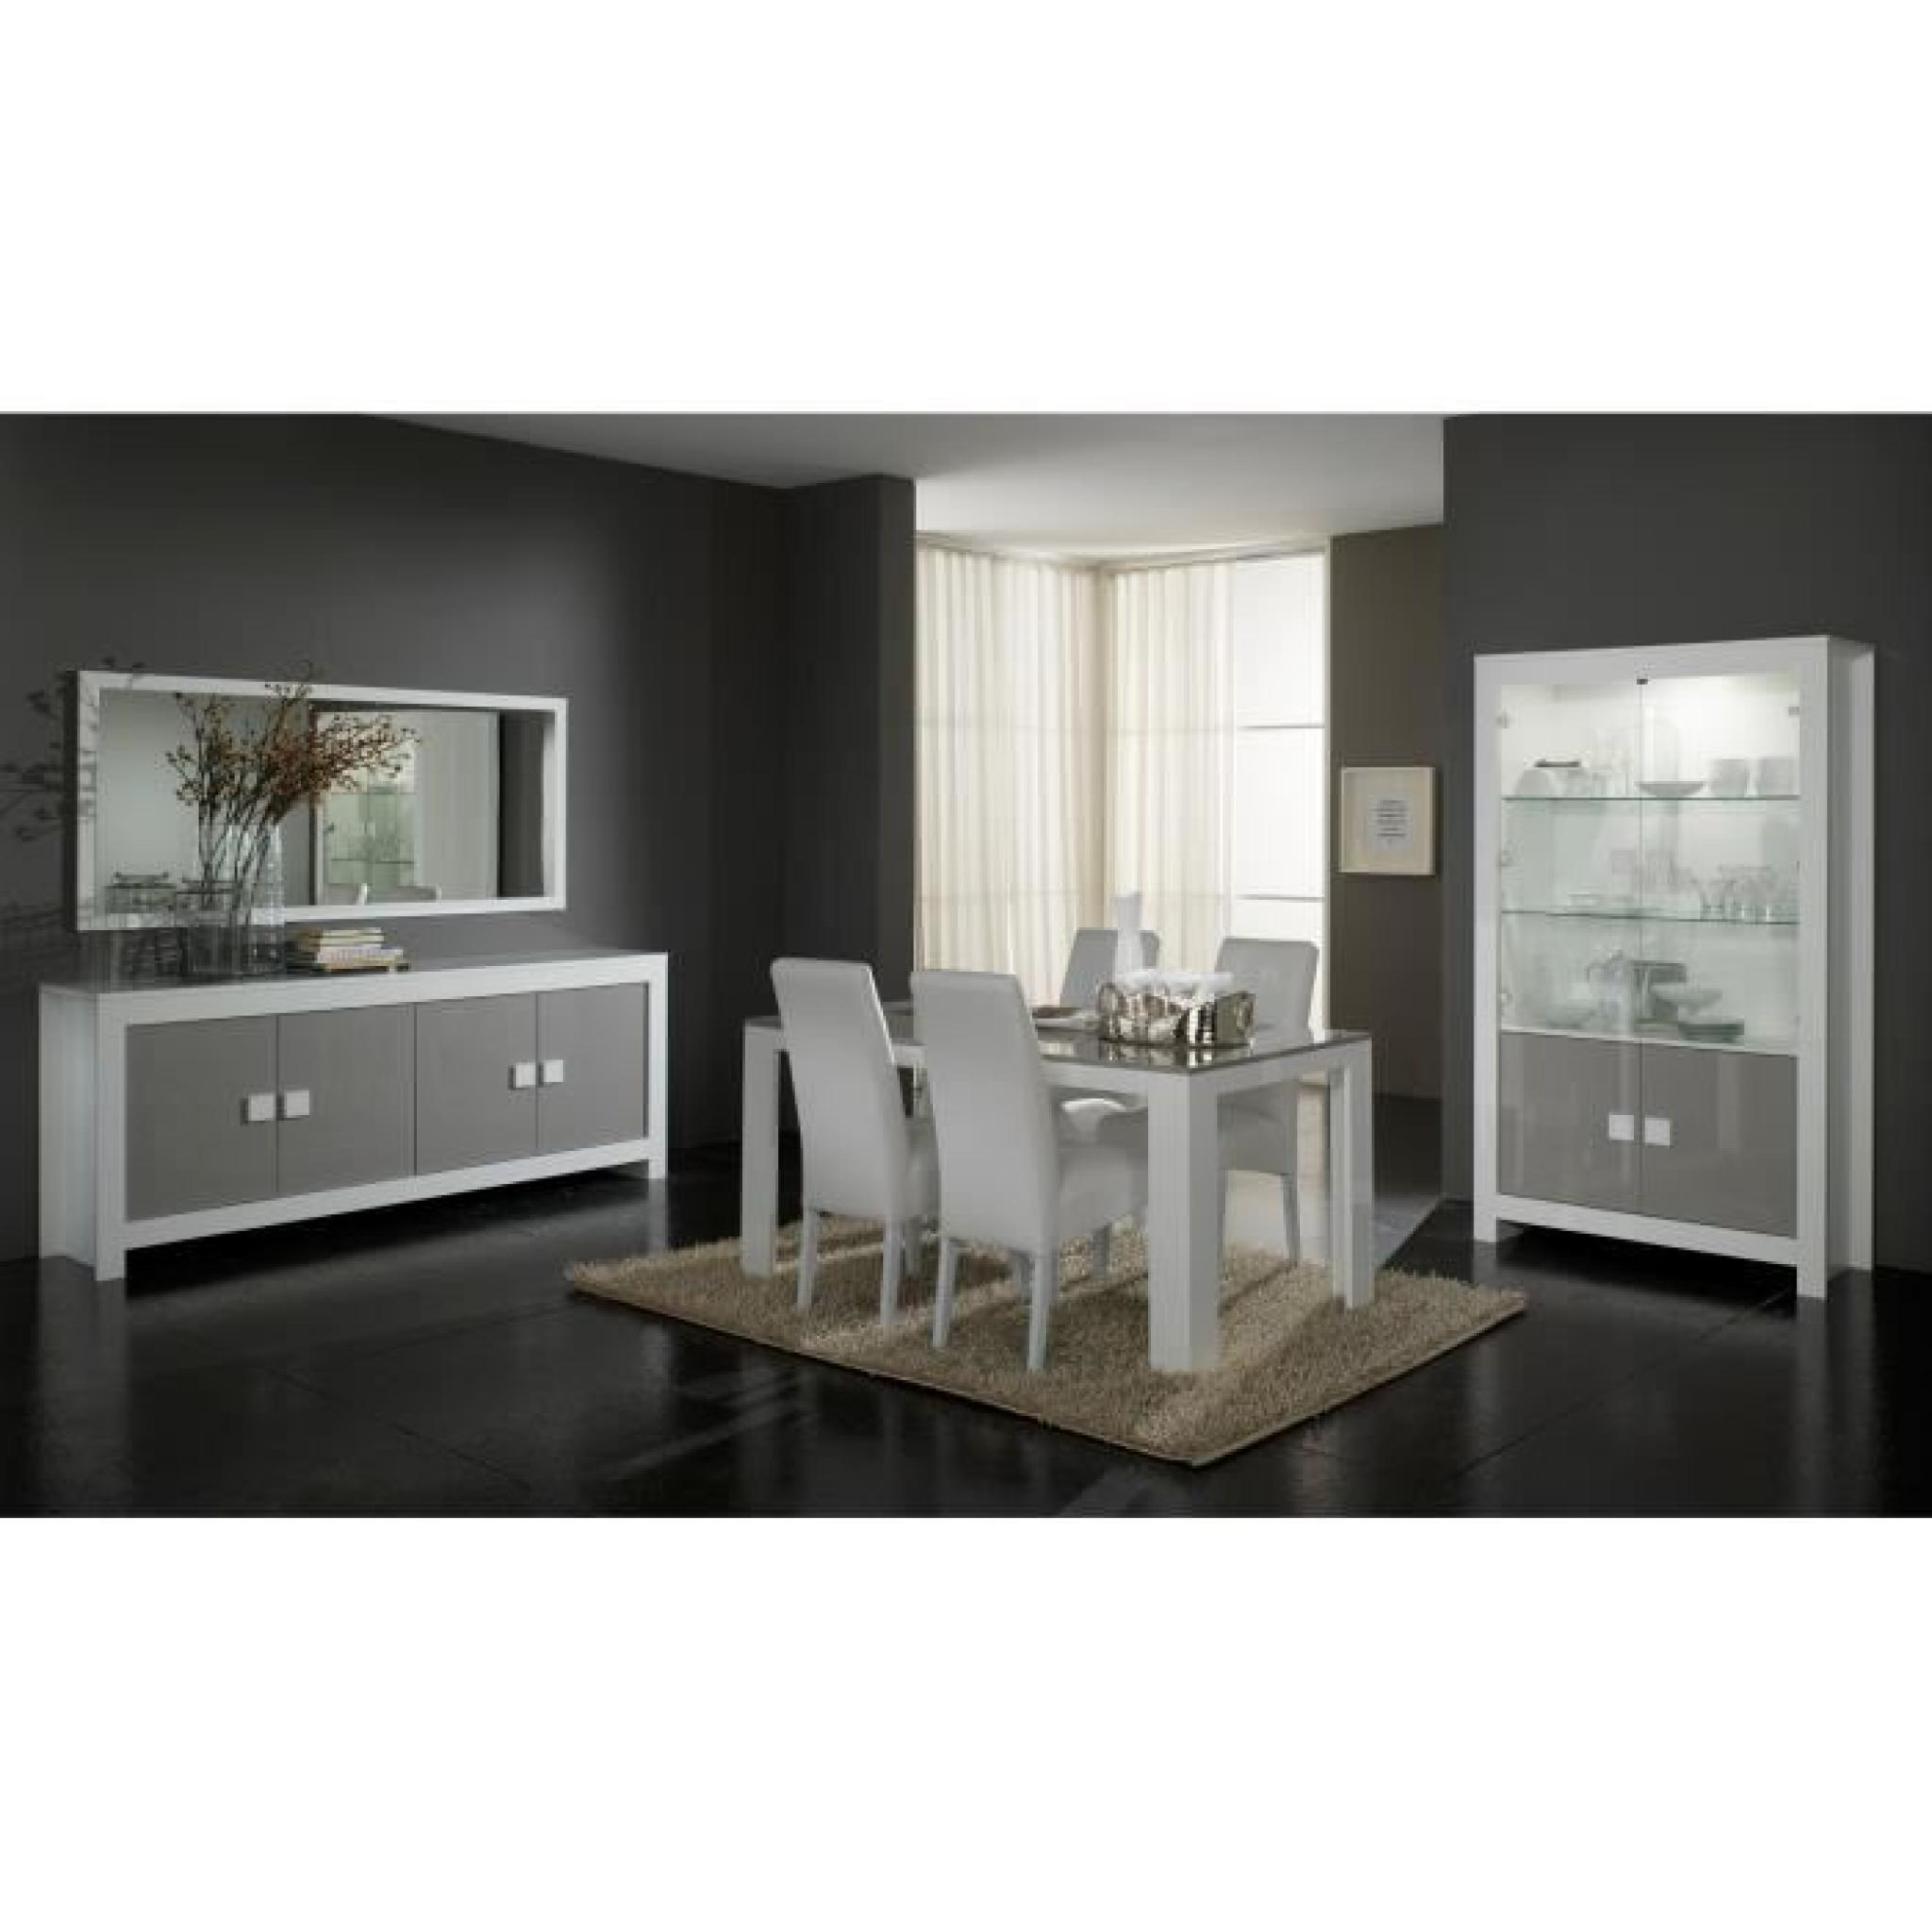 Dressoir ultra design blanc et gris laqu 4 portes for Buffet cuisine gris laque